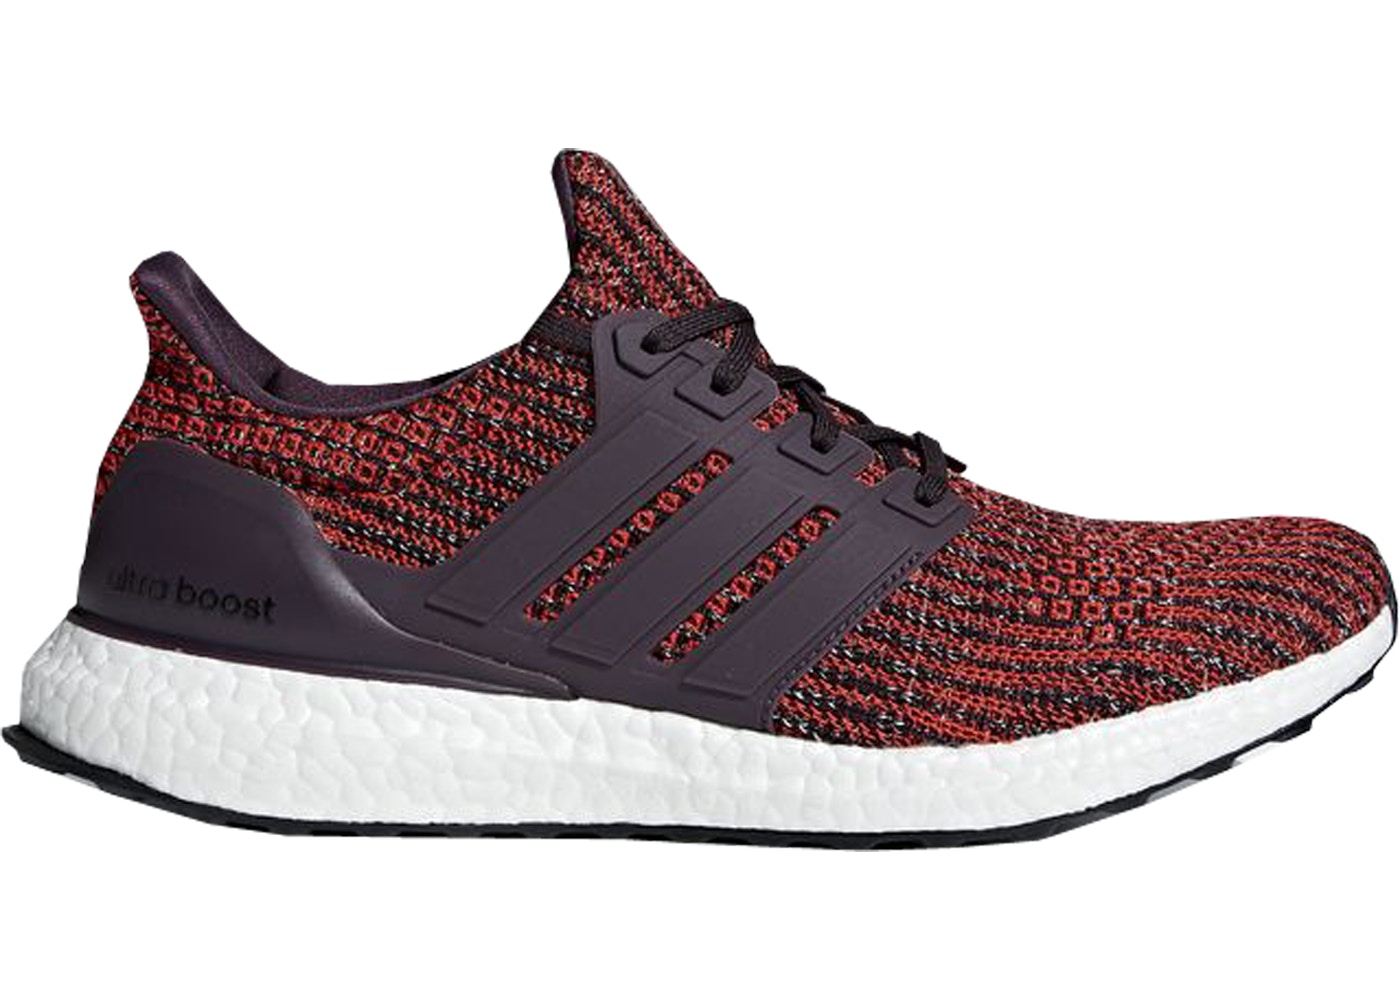 766a4cbe48e adidas Ultra Boost 4.0 Noble Red - CP9248